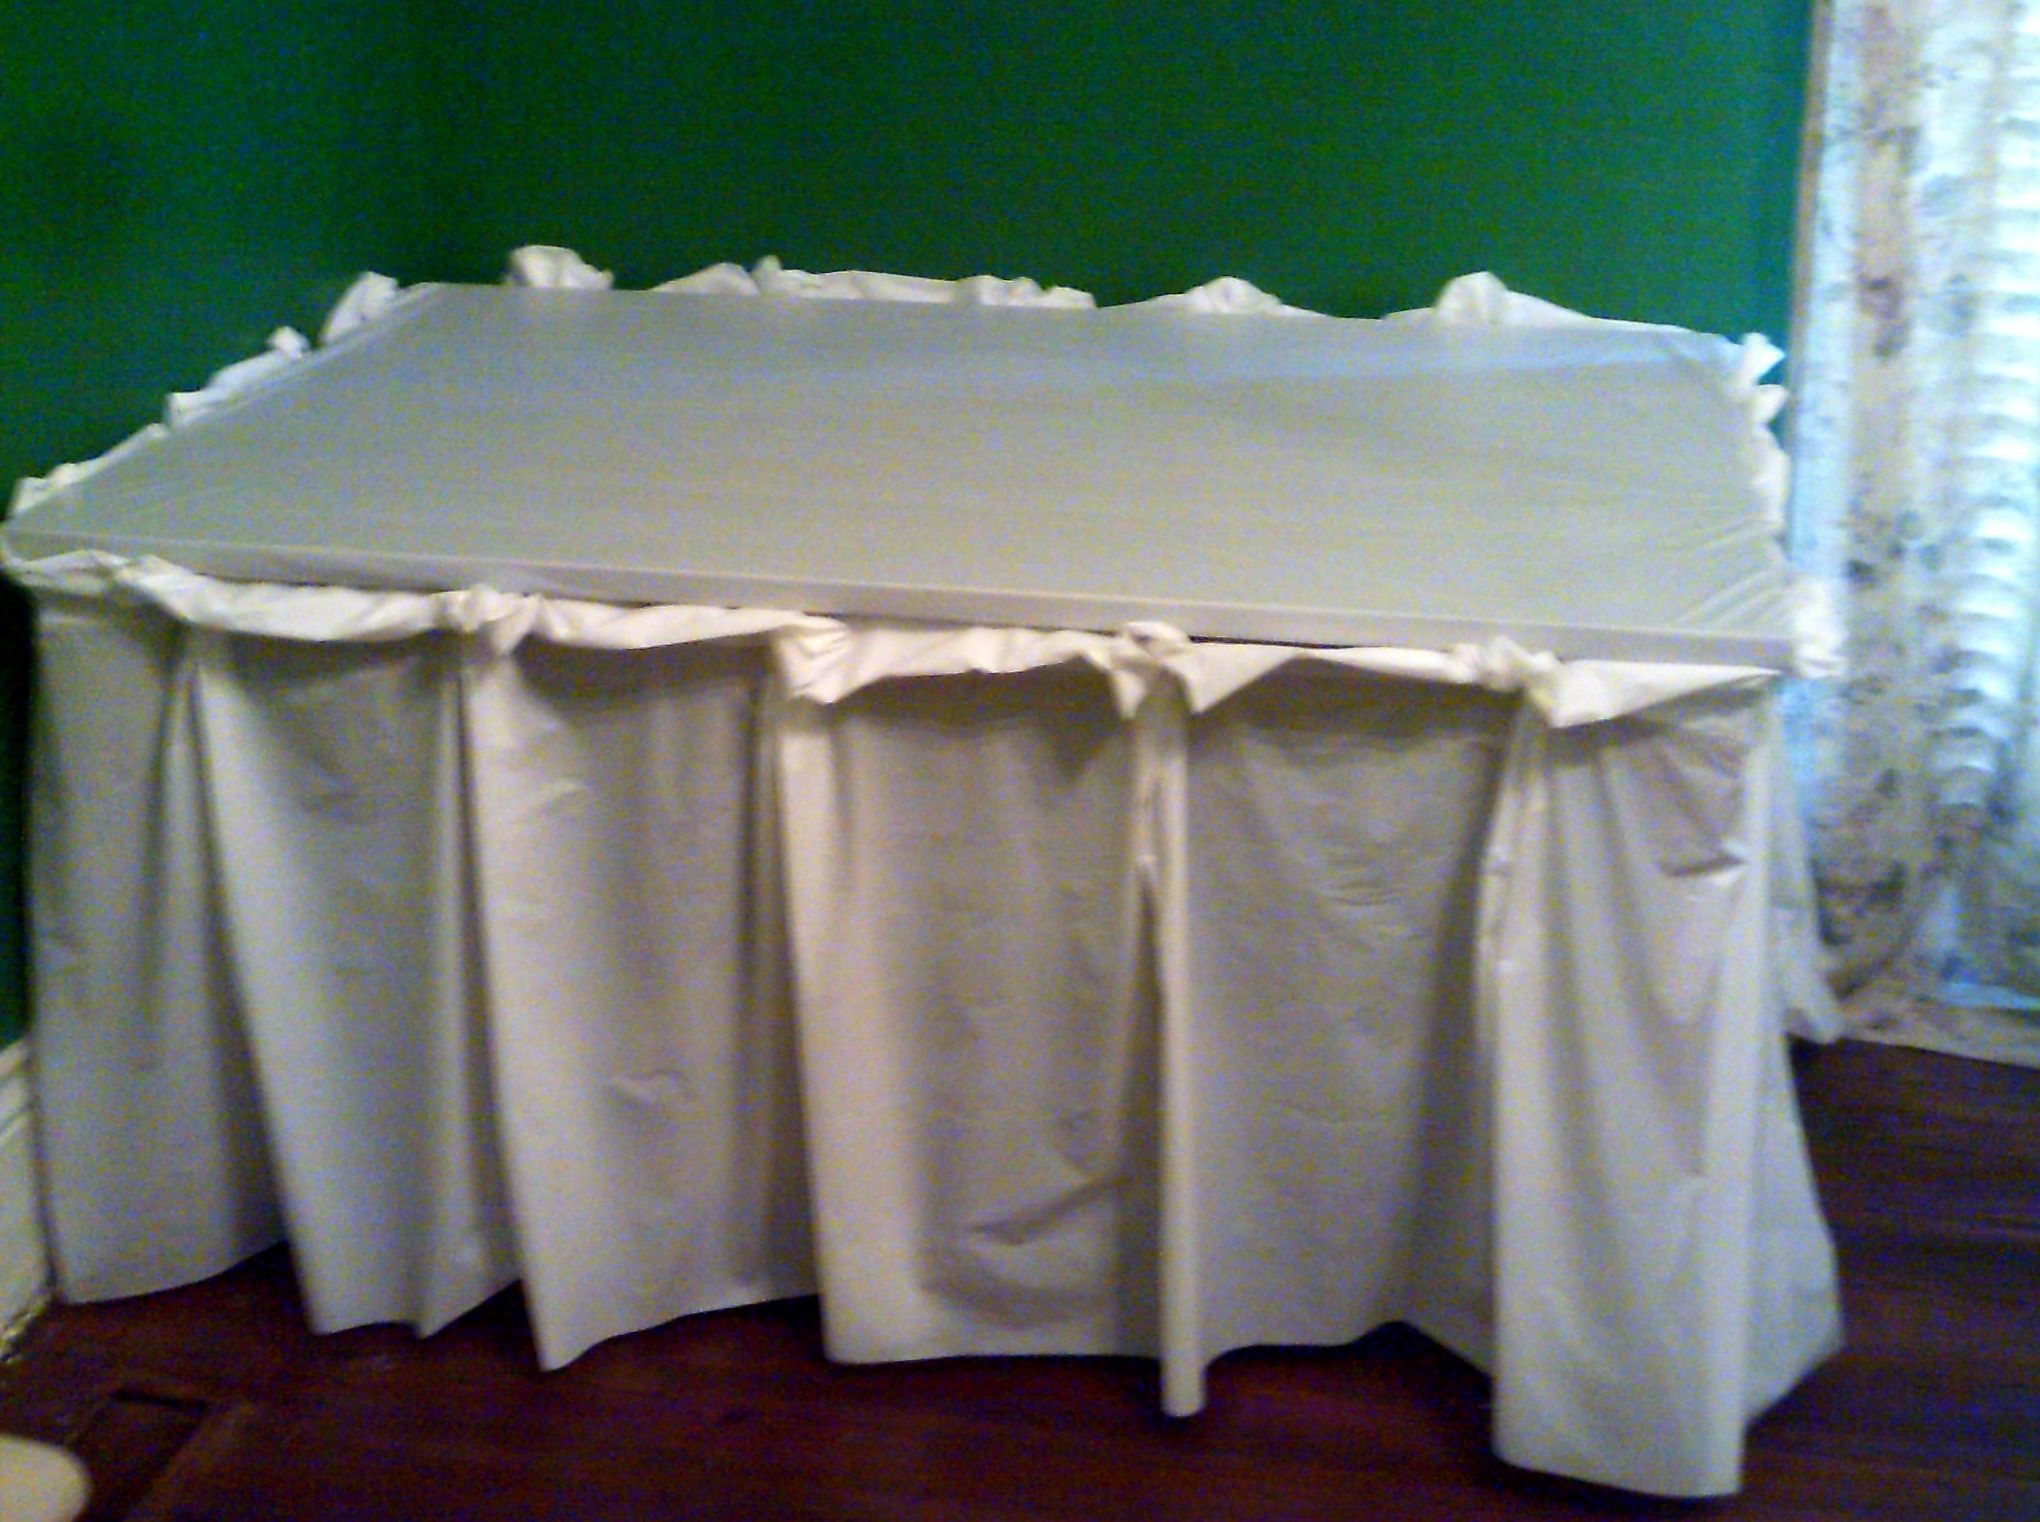 How to make a fabric table cover - Diy Kts Idea Tested French Pleat No Sew Table Skirt Using